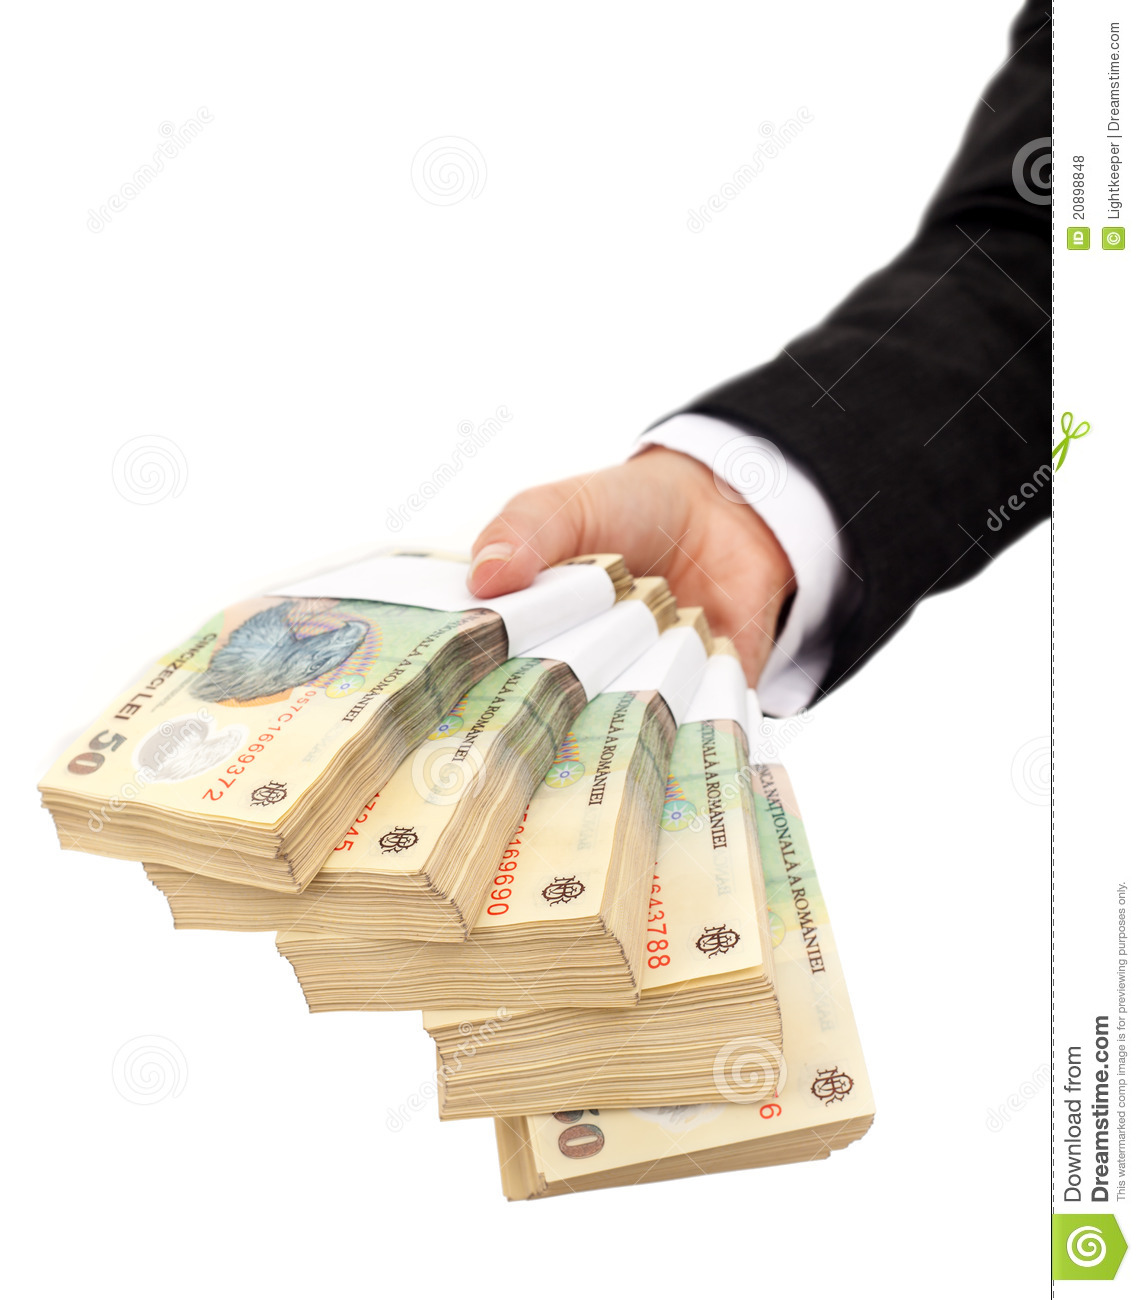 Stacks of romanian currency